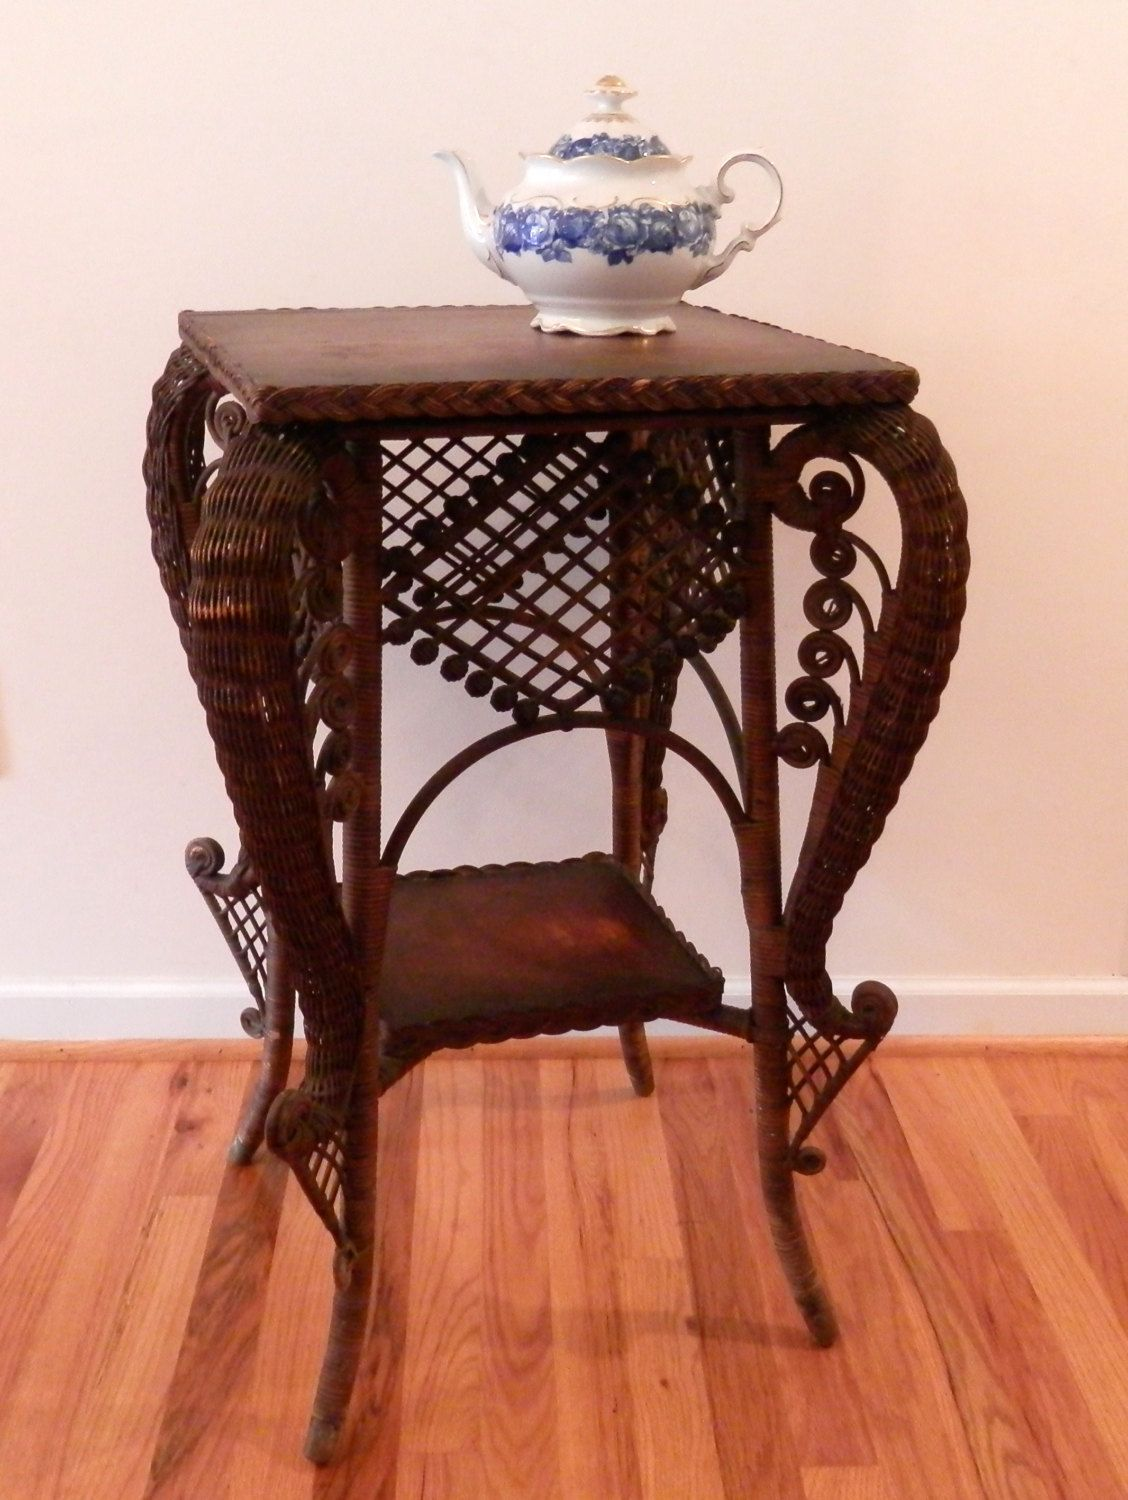 Antique Wicker Table - Victorian Style Natural Wicker Side Table by CraftItVintage on Etsy